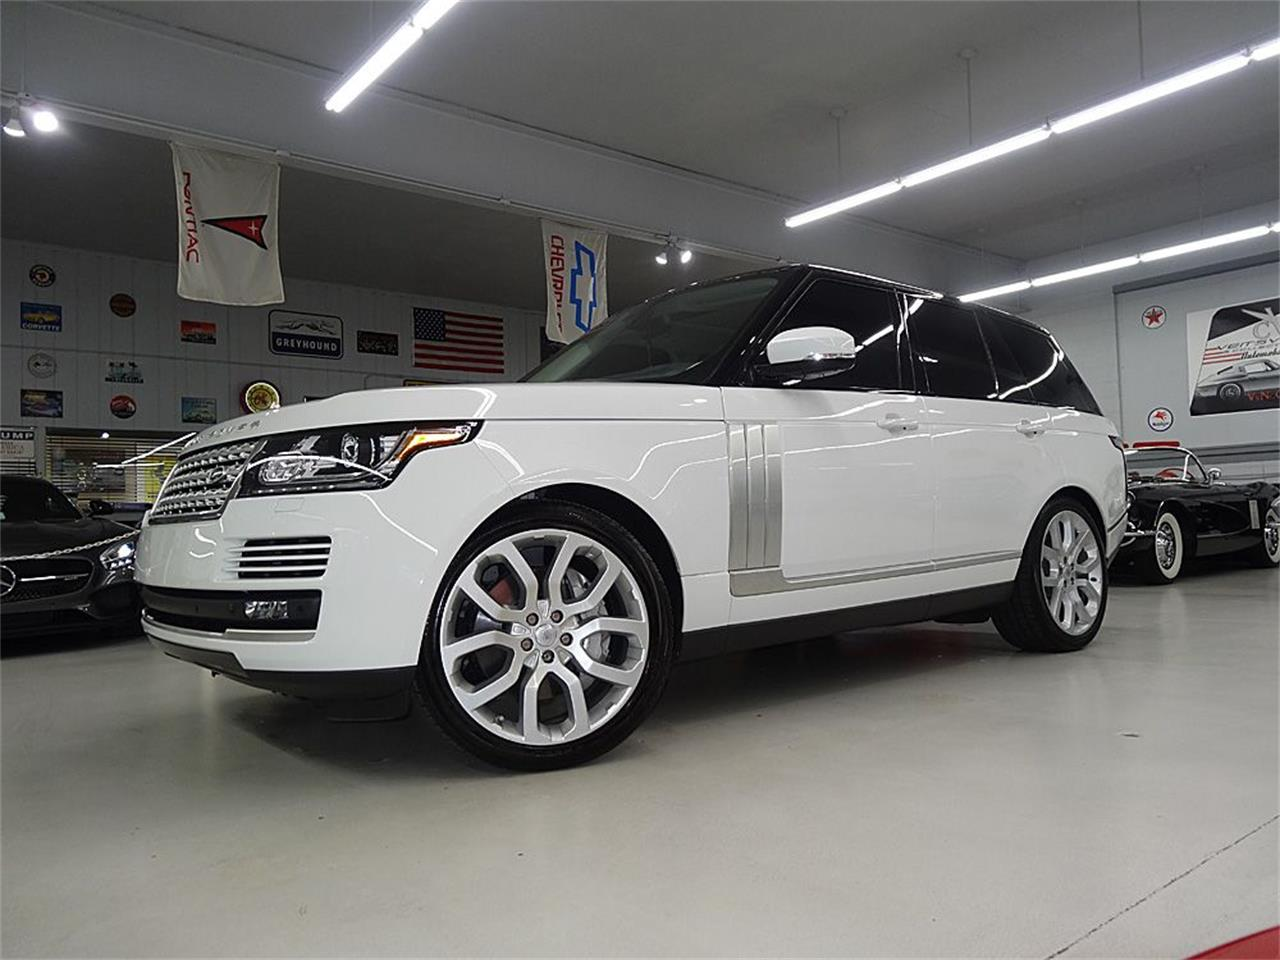 Large Picture of '14 RANGE ROVER SUPERCHARGED located in Bettendorf Iowa - $80,900.00 - KJBX